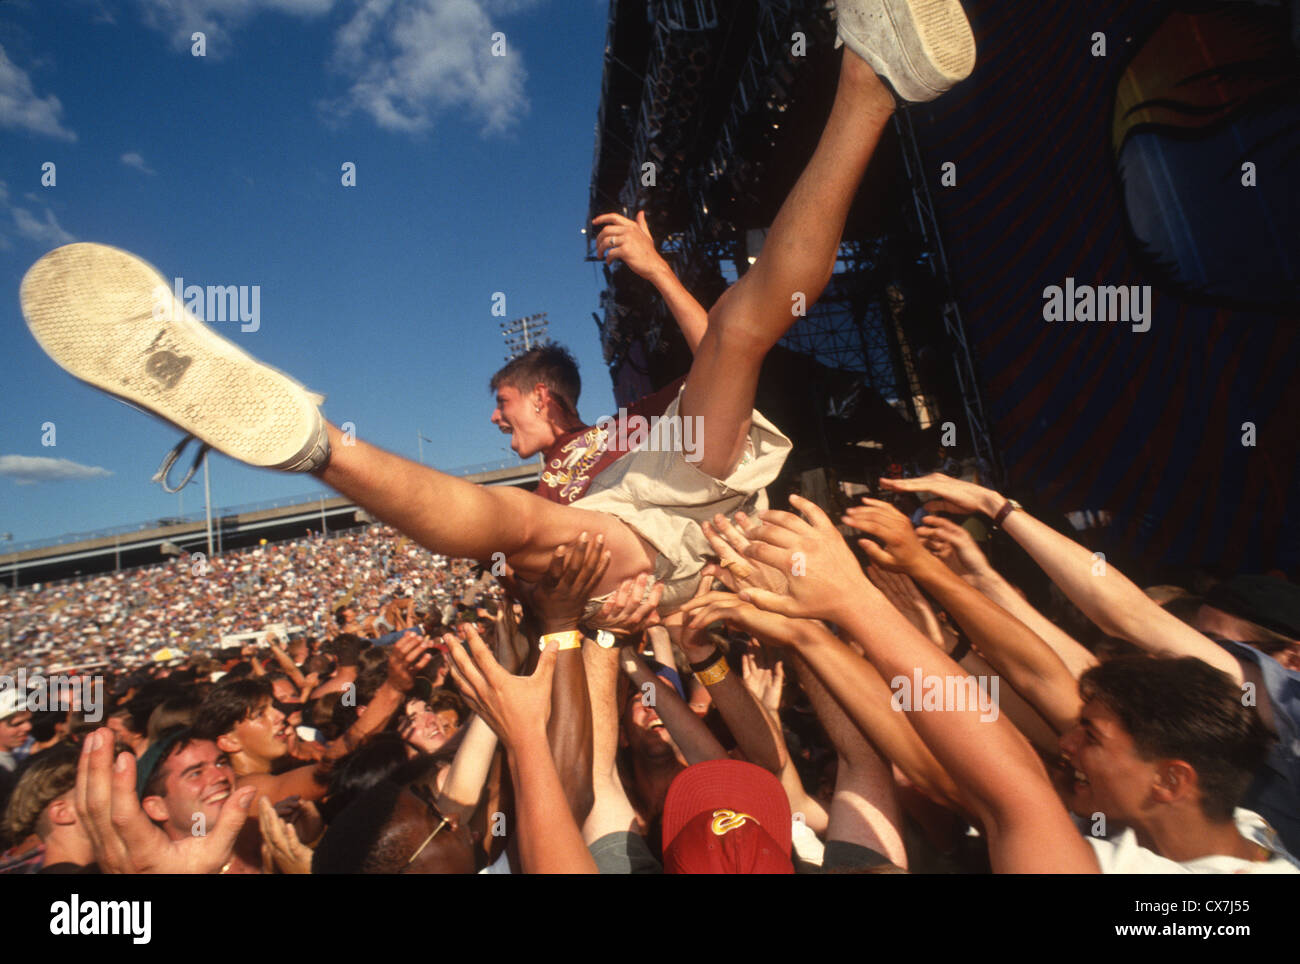 Randall's Island, New York - Crowd Surfing at Lollapalooza - Stock Image